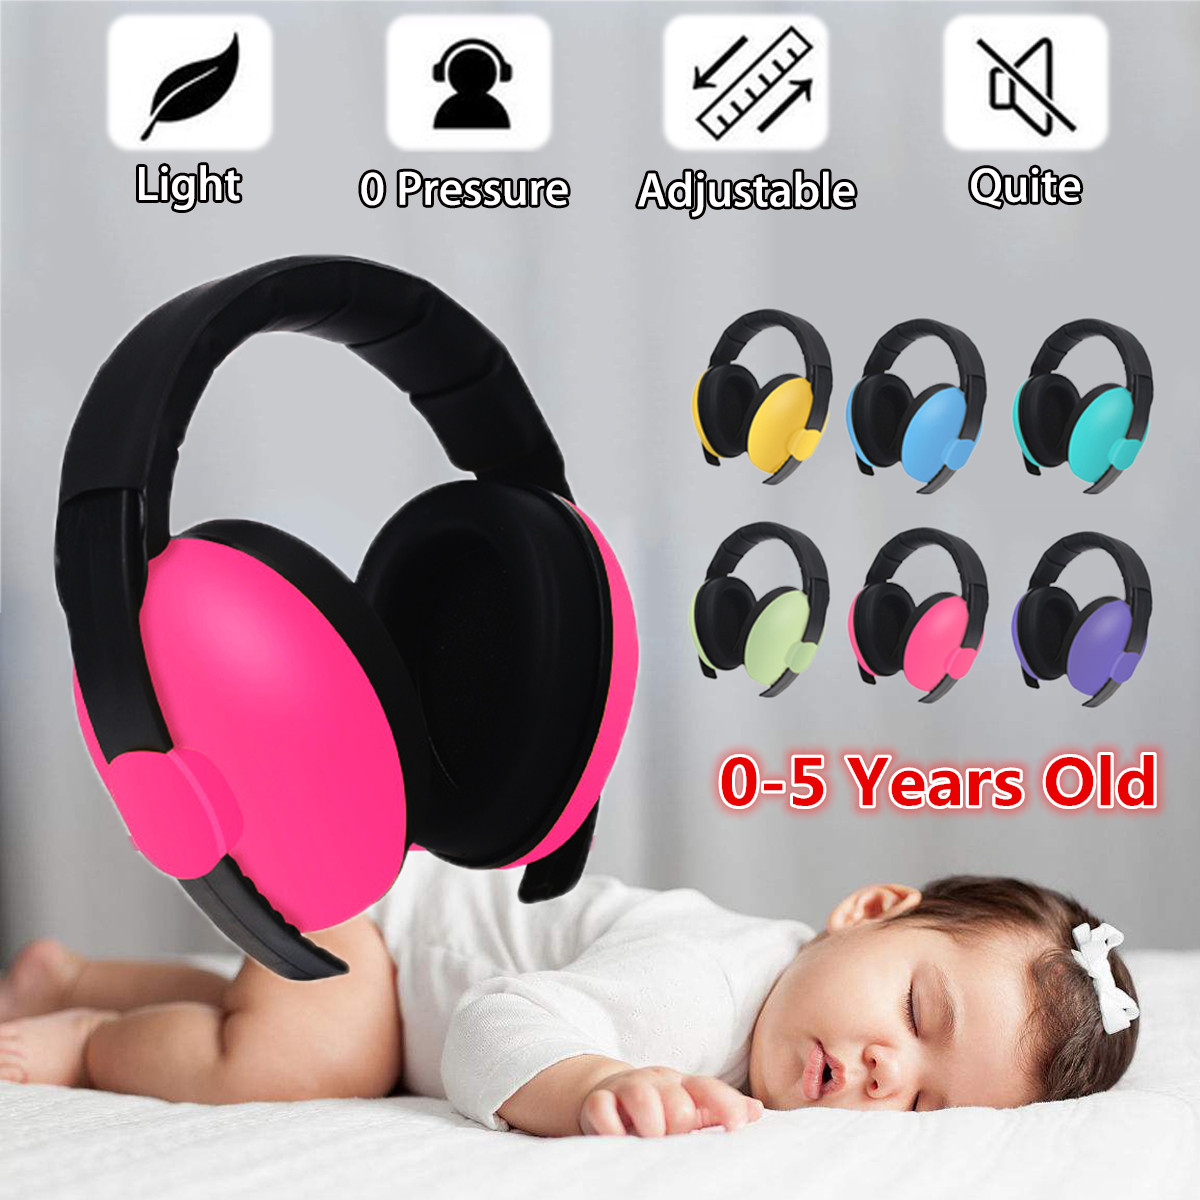 где купить 1 pcs Adjustable Baby Earmuffs Hearing Protection Ear Defenders Noise Reduction Safety for 3 Months-5 Years Old Child Baby дешево